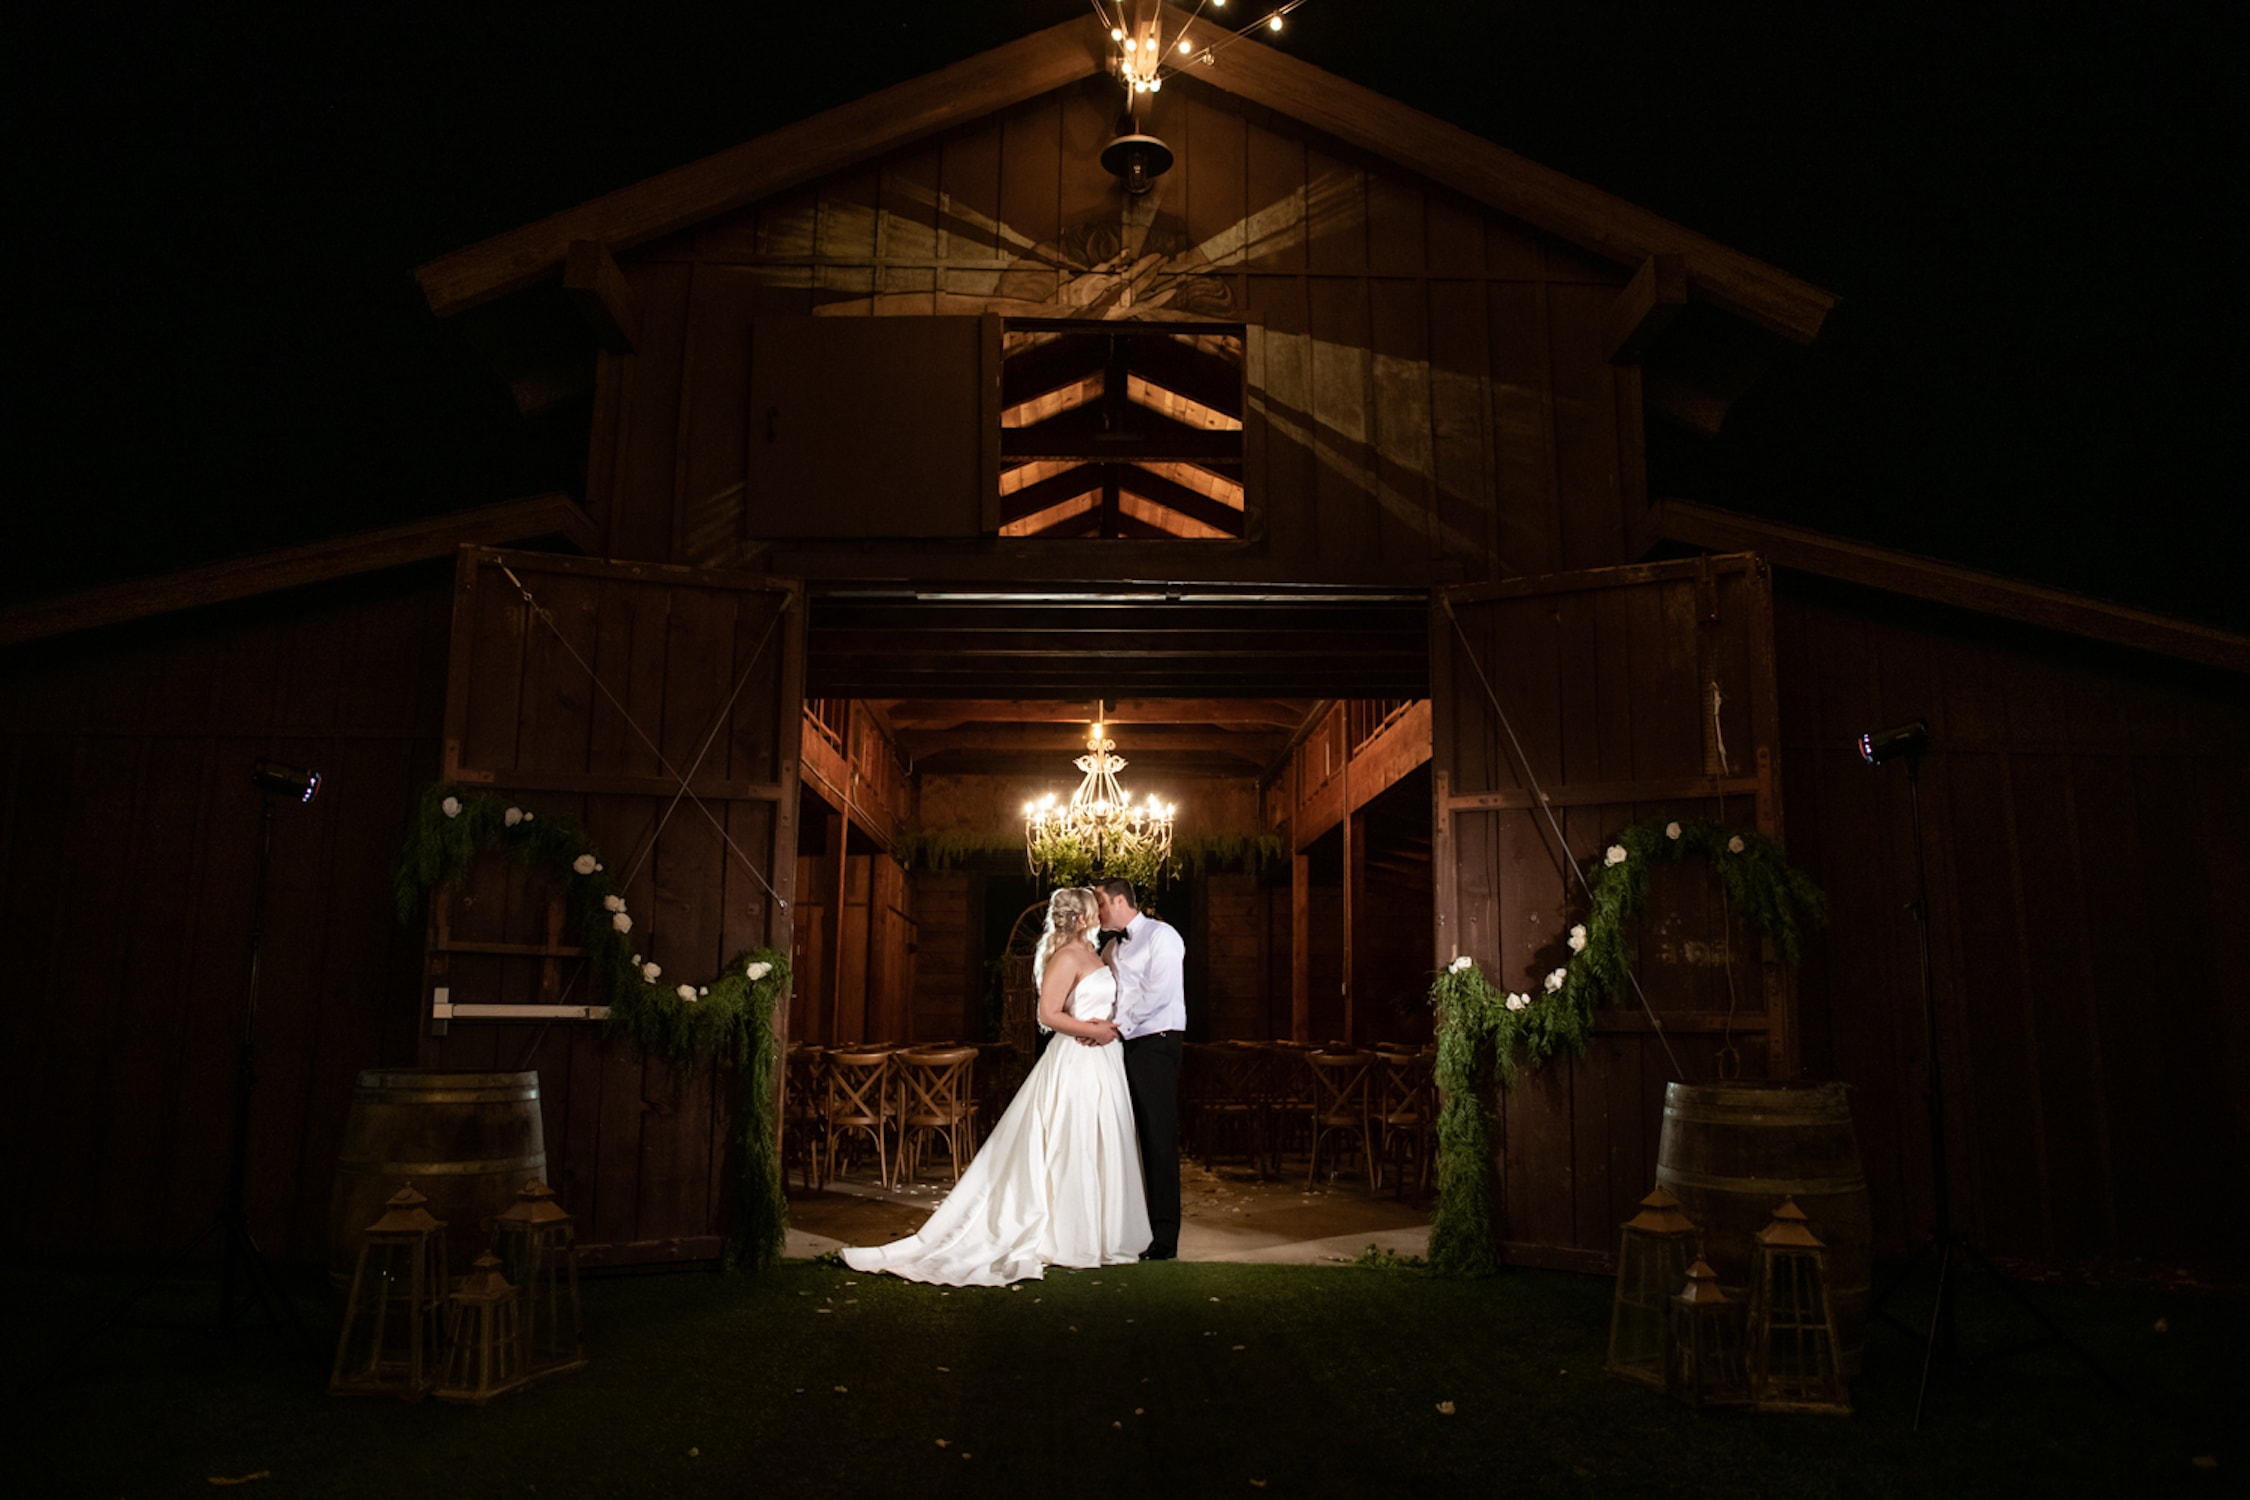 Bride and groom embracing in a barn at night at Ethereal Gardens.